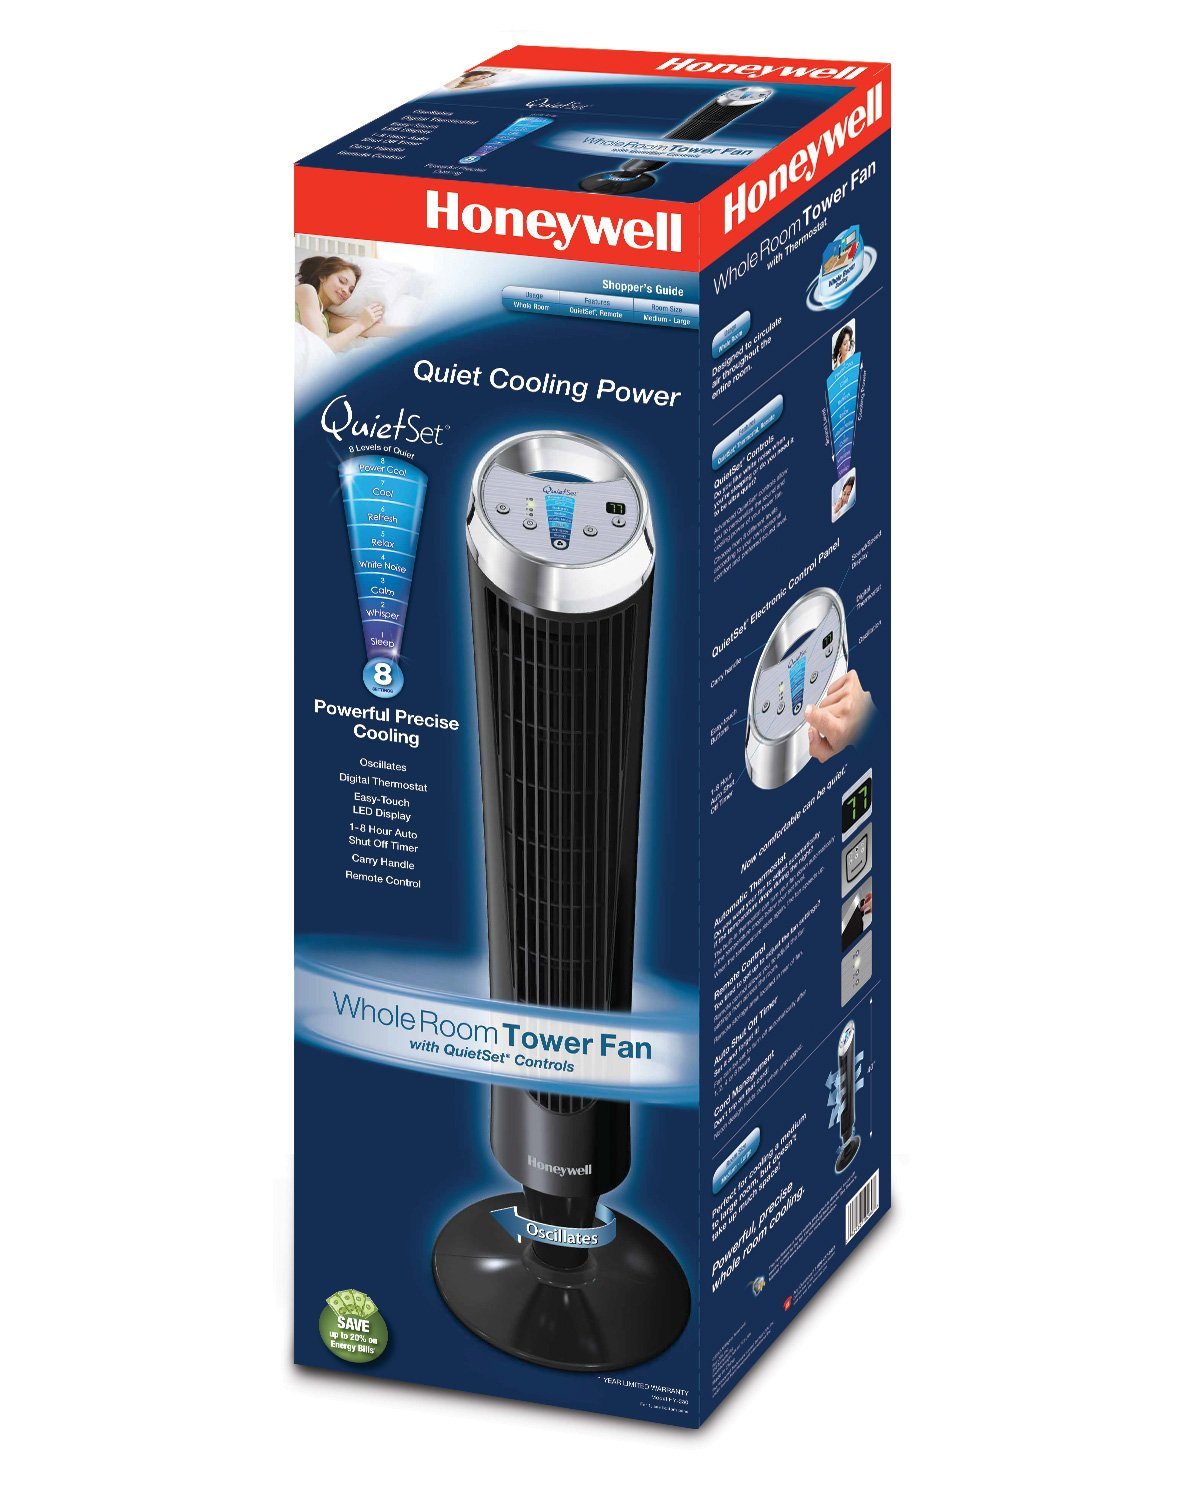 Amazoncom Honeywell HY280 QuietSet Whole Room Tower Fan Home